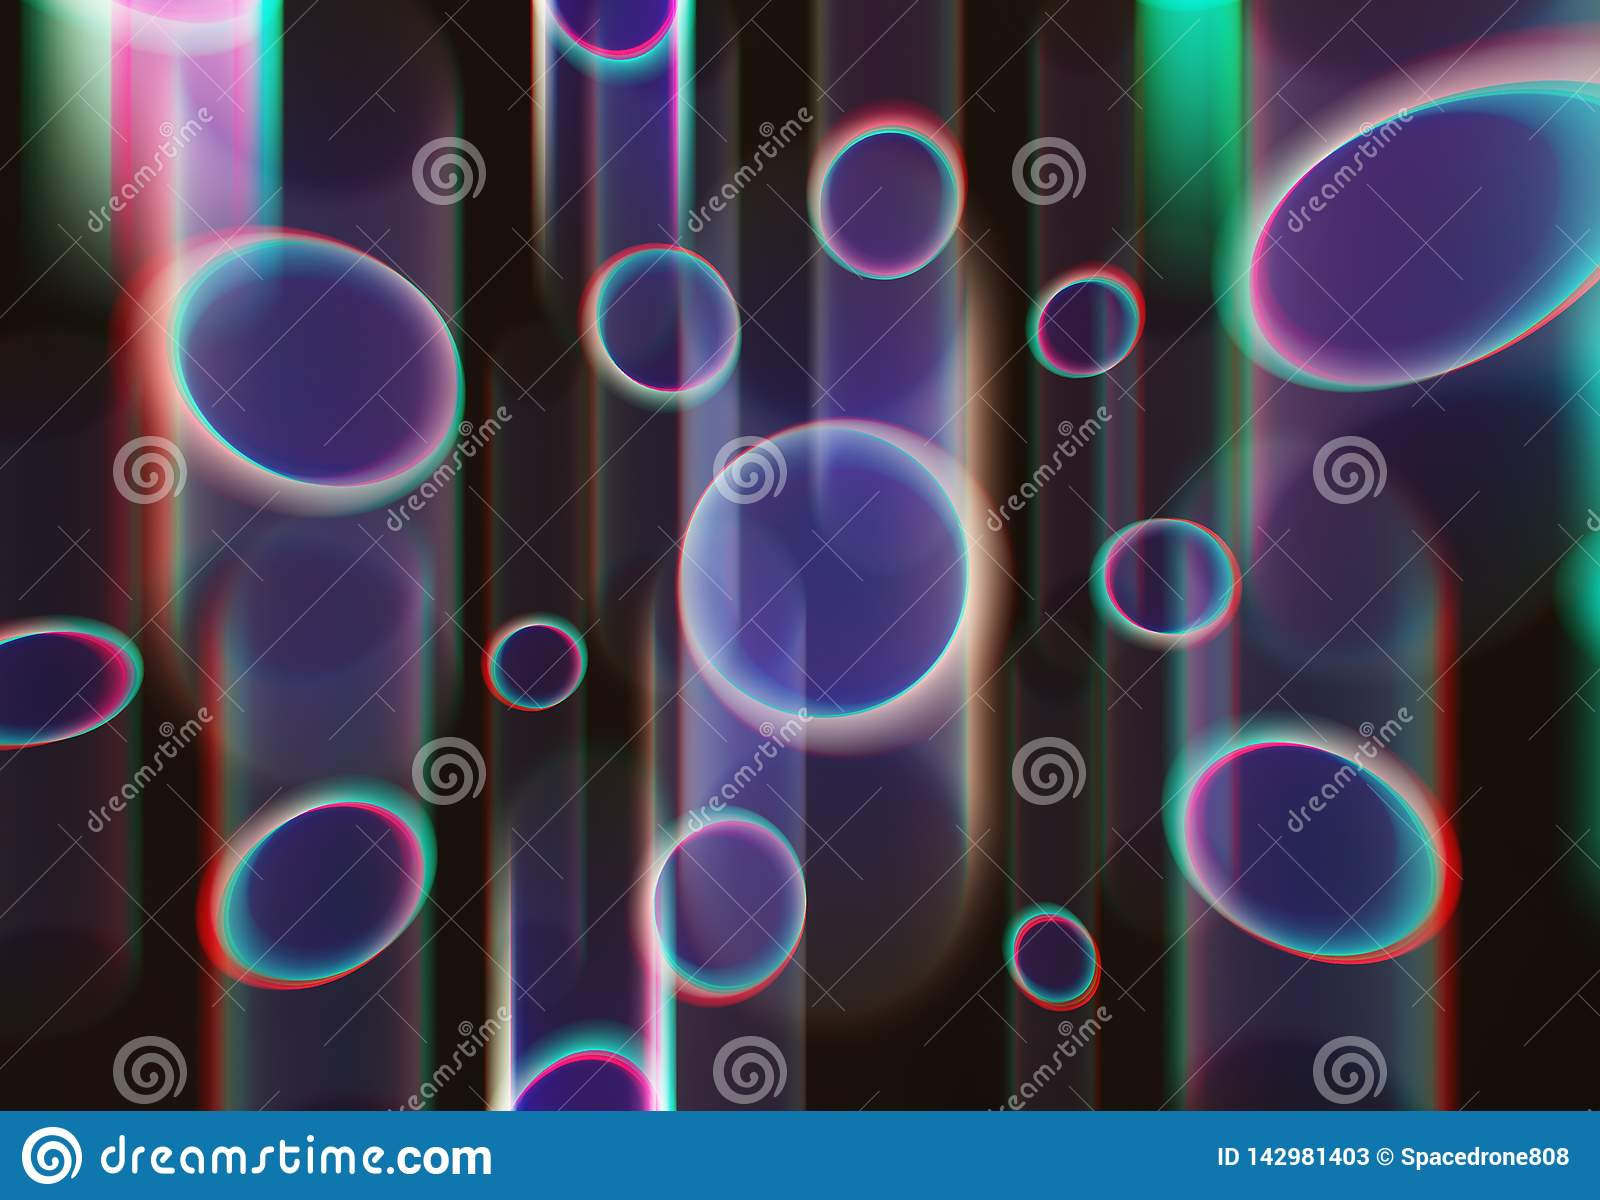 Acid bubble shaped objects illustration texture background